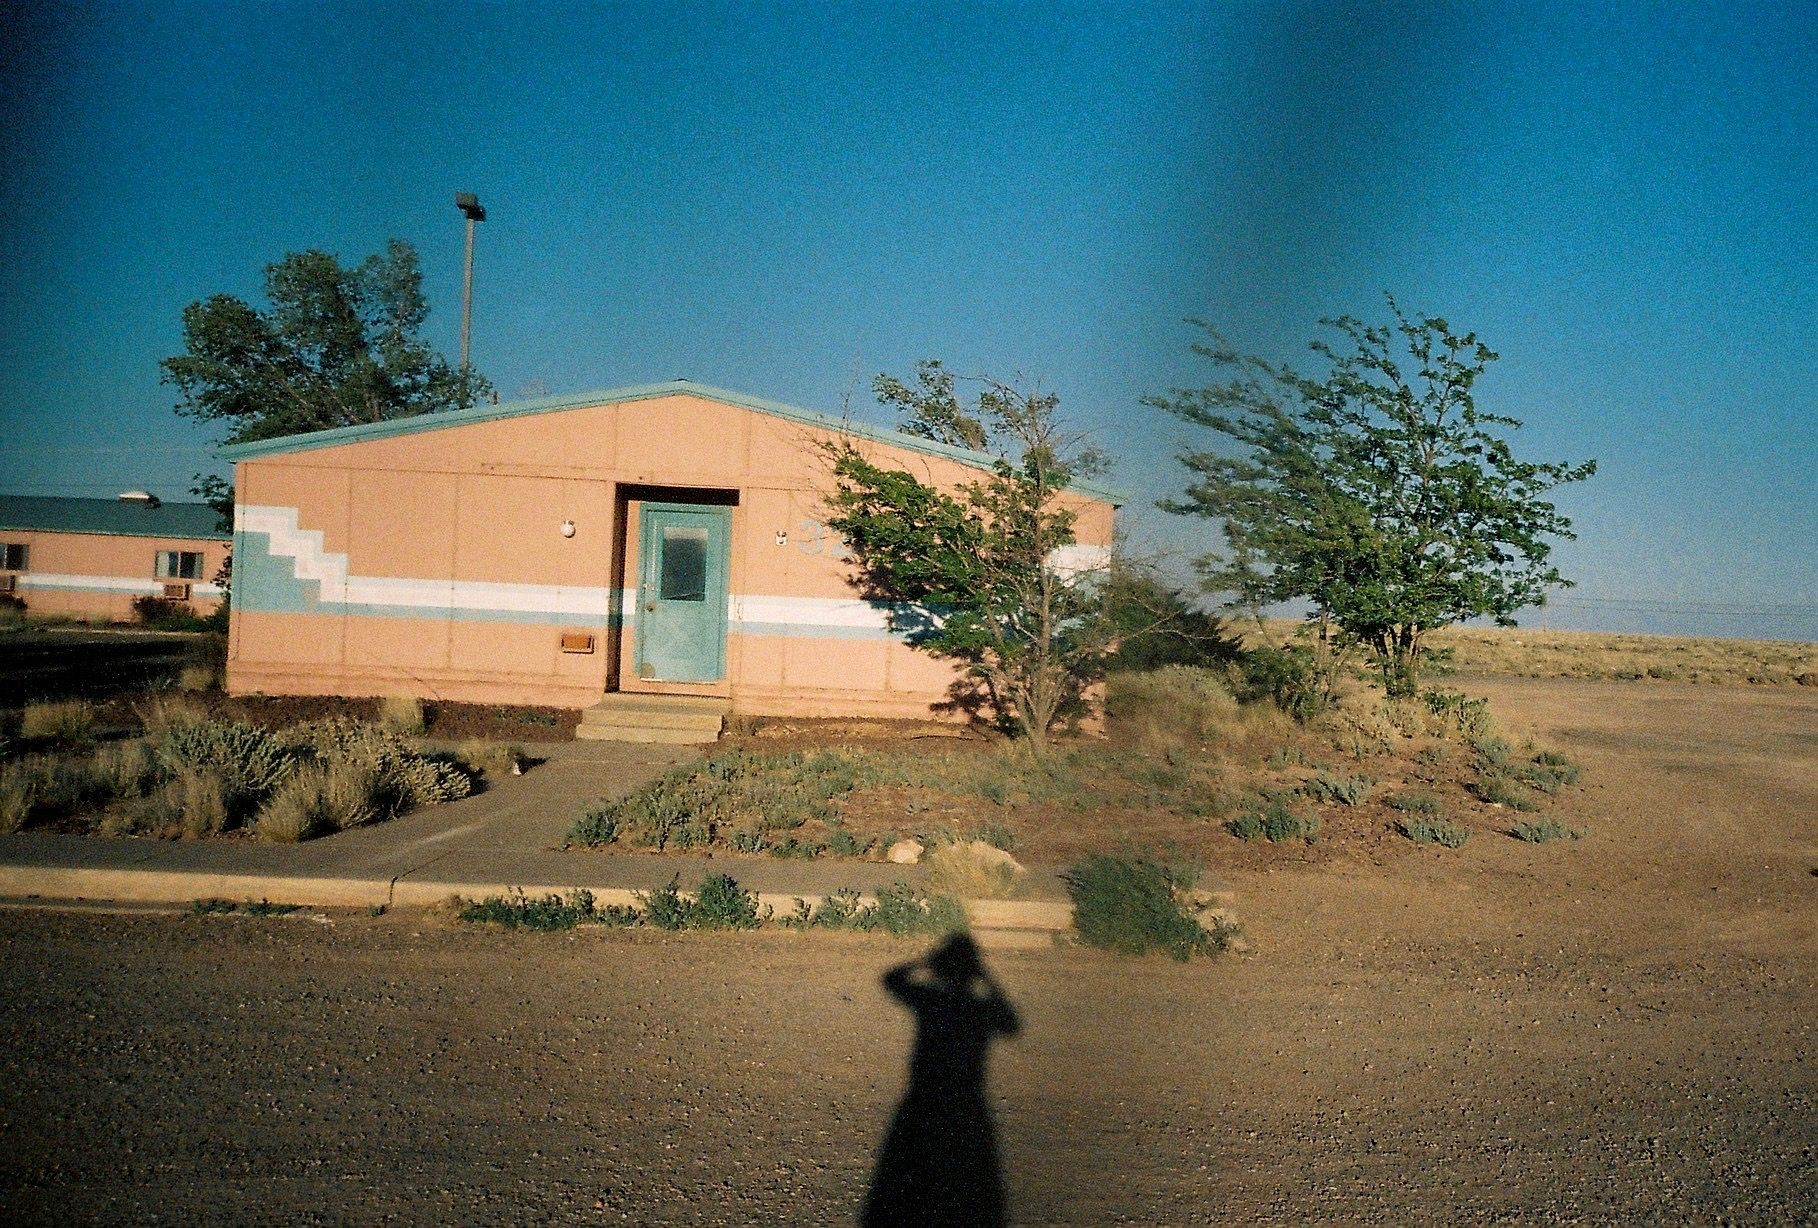 Exterior of a house with shadow of woman